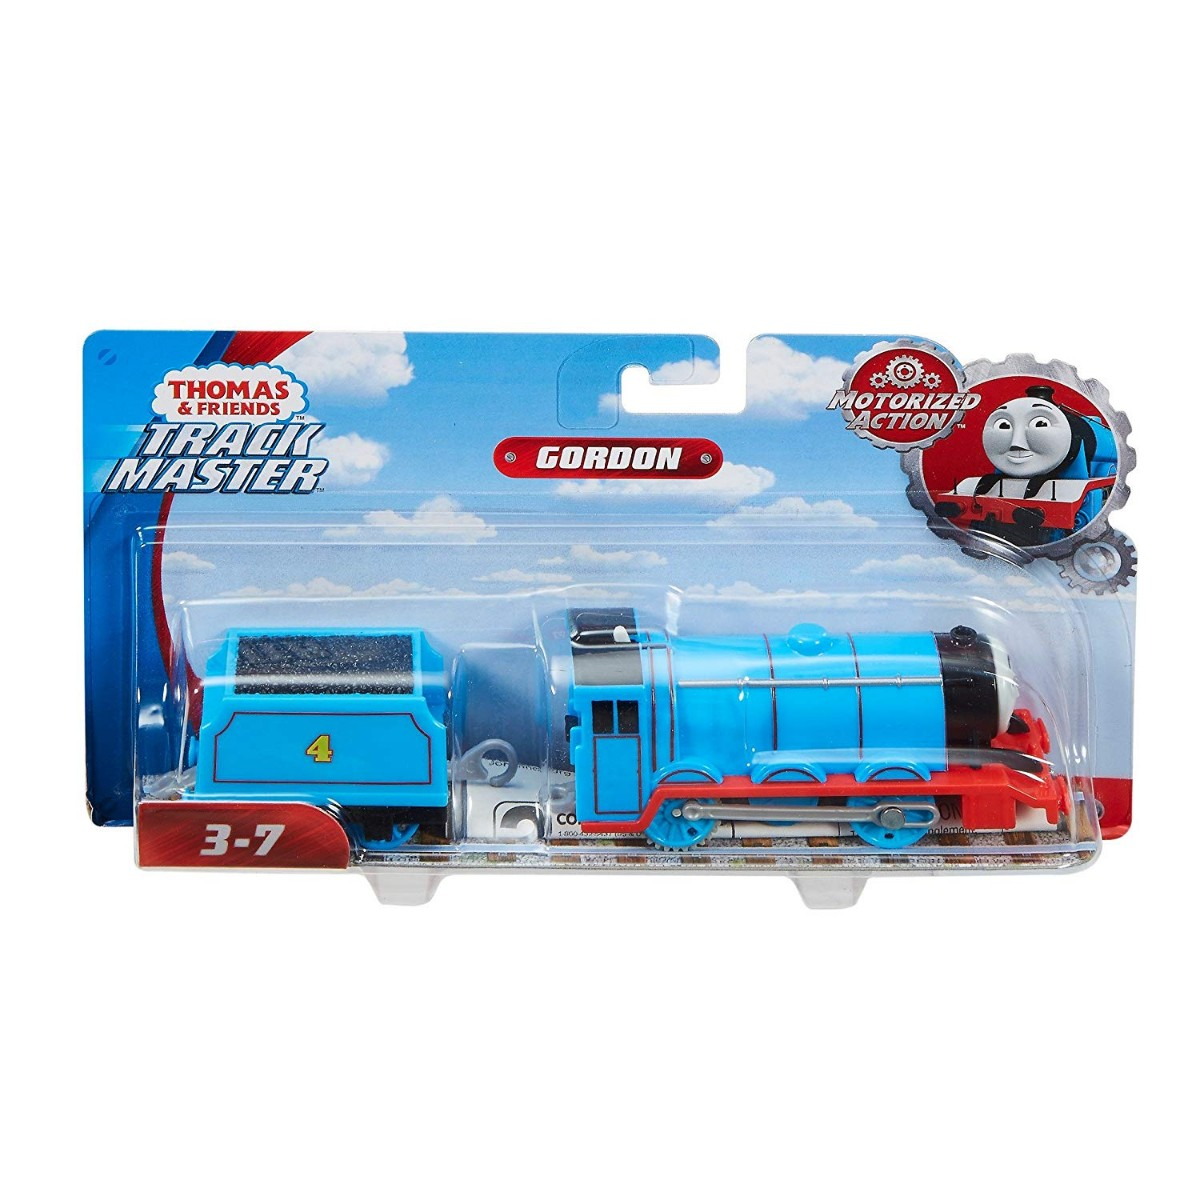 new in box Thomas the Tank engine Trackmaster Gordon